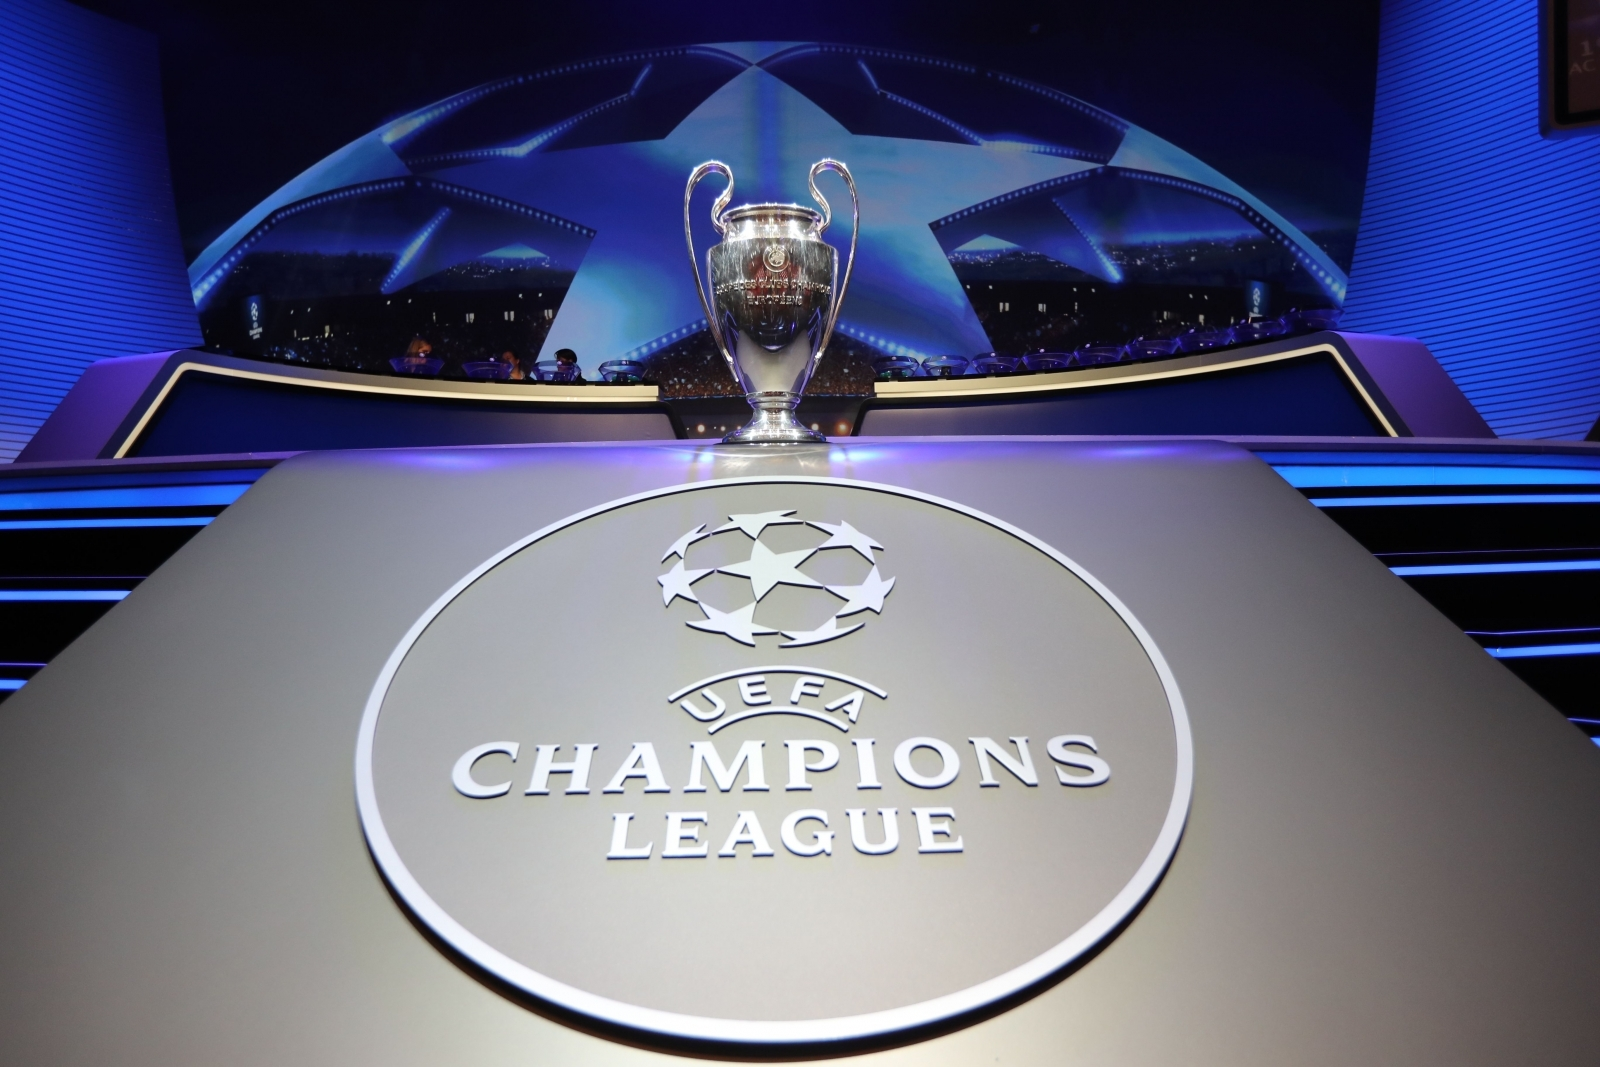 Champions League 2017/18 Round Of 16 Draw: How To Watch